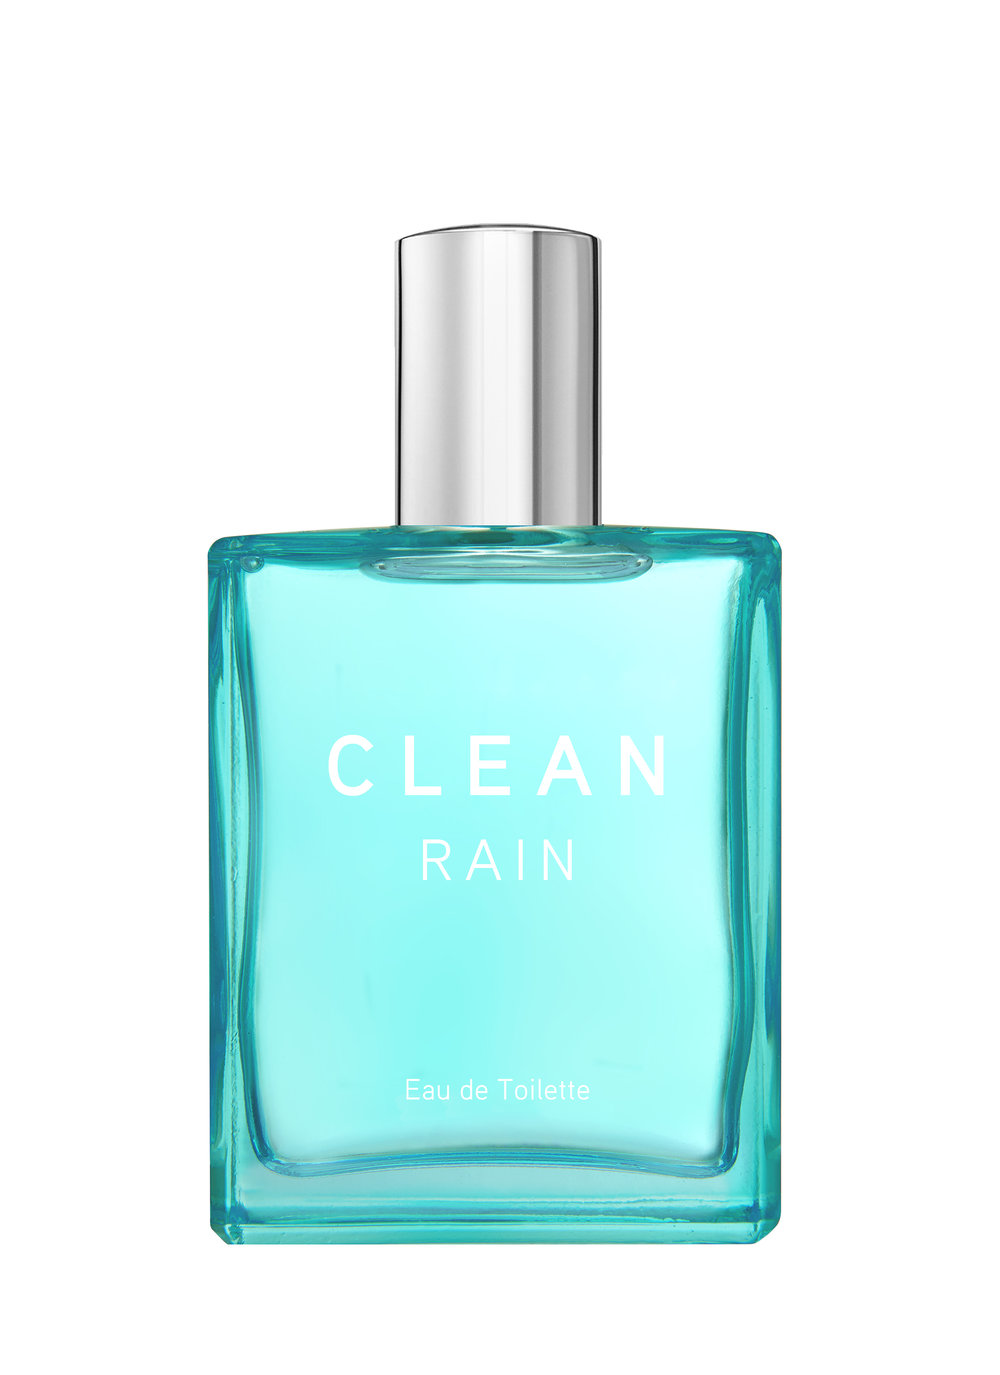 EDT_RAIN_BOTTLE_122117.jpg